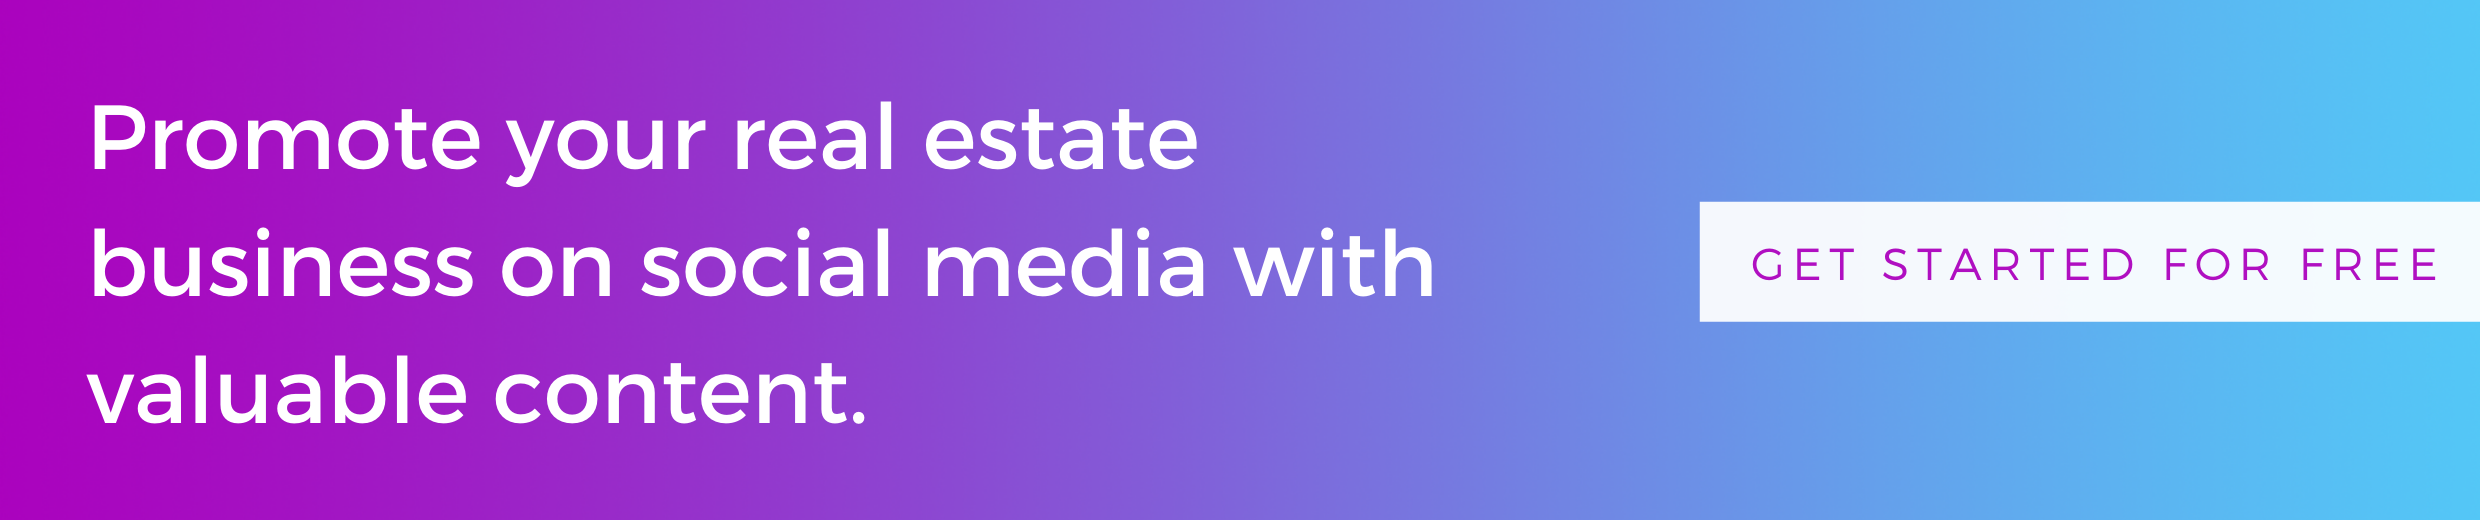 button to get started for free with PropertySimple and promote your real estate business on social media with valuable content